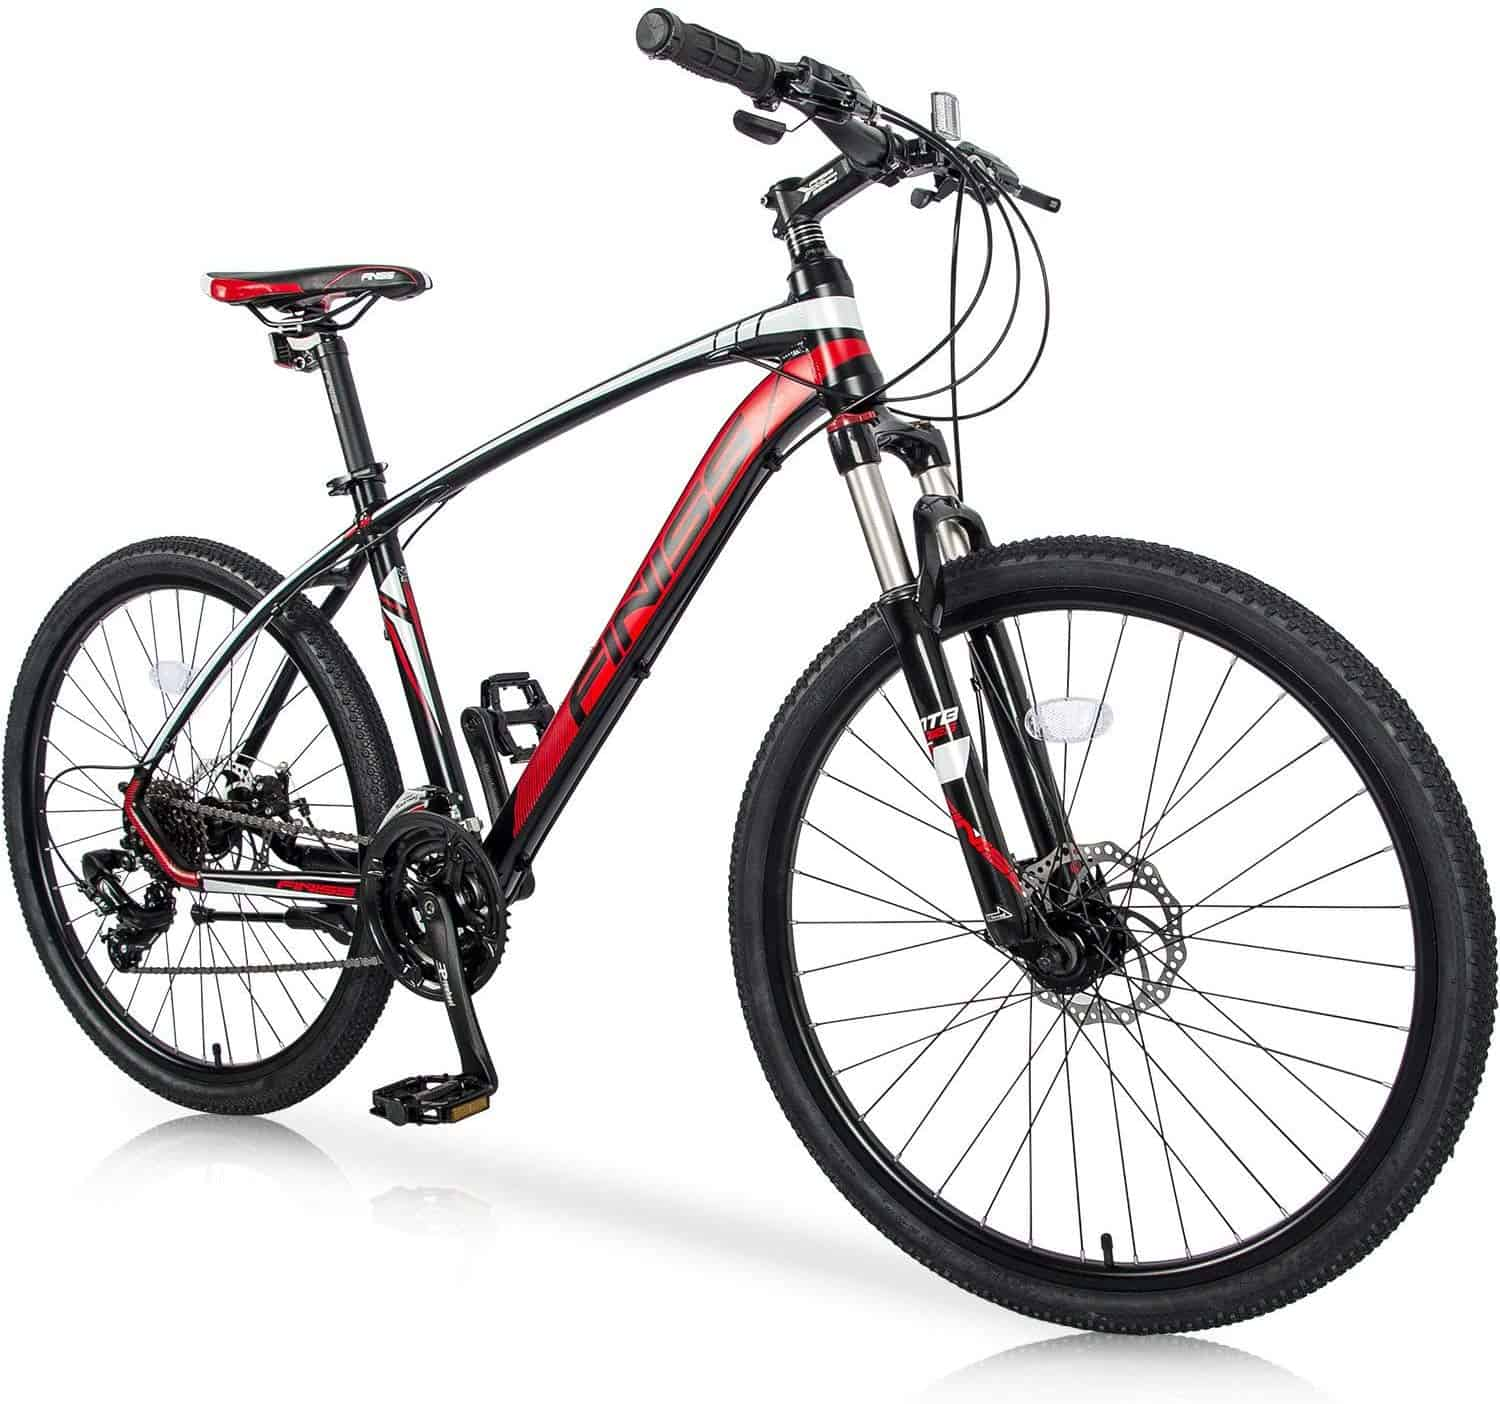 Merax Falcon Full Suspension Mountain Bike Aluminum Frame